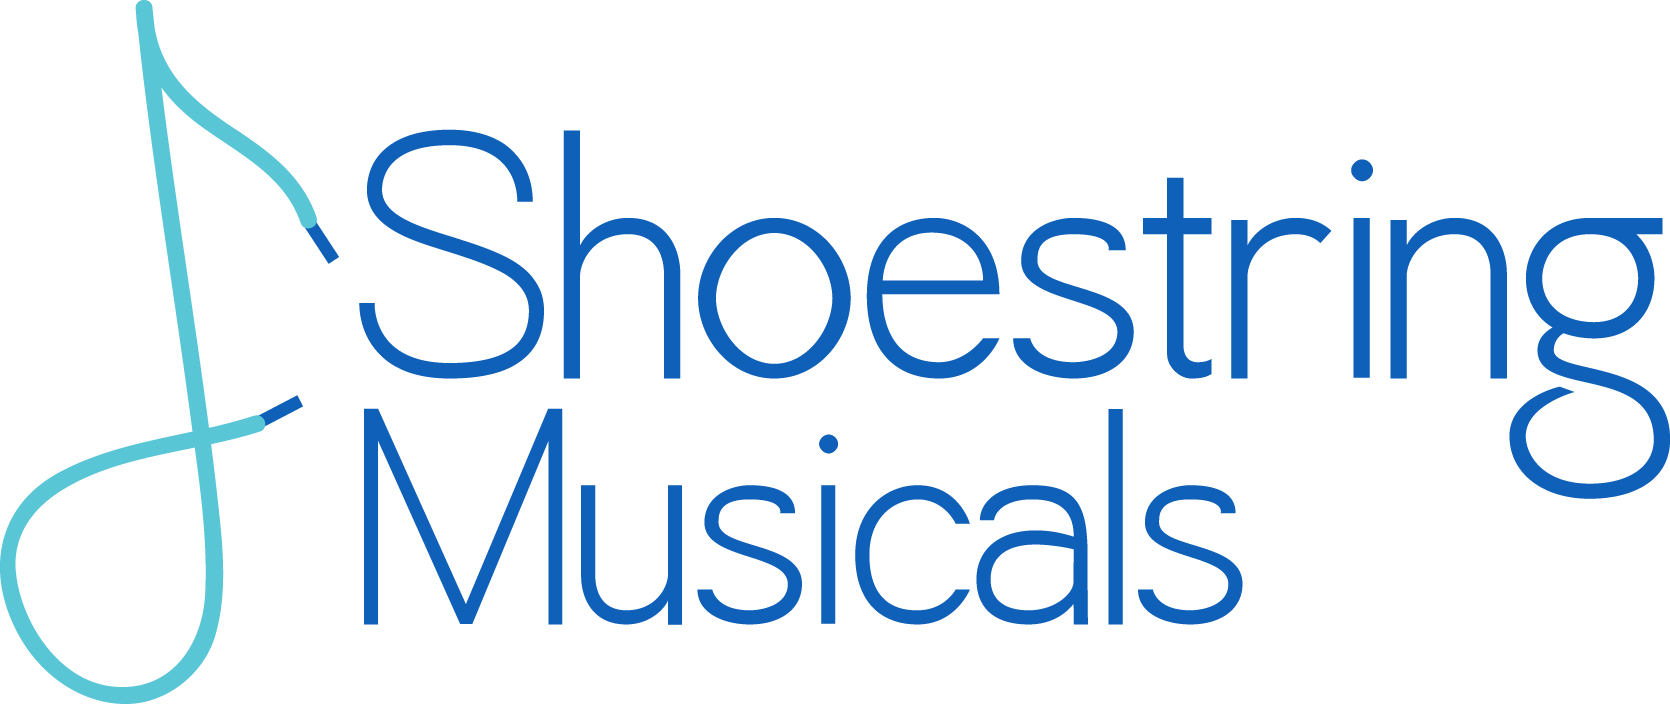 shoe string musicals logo.jpg